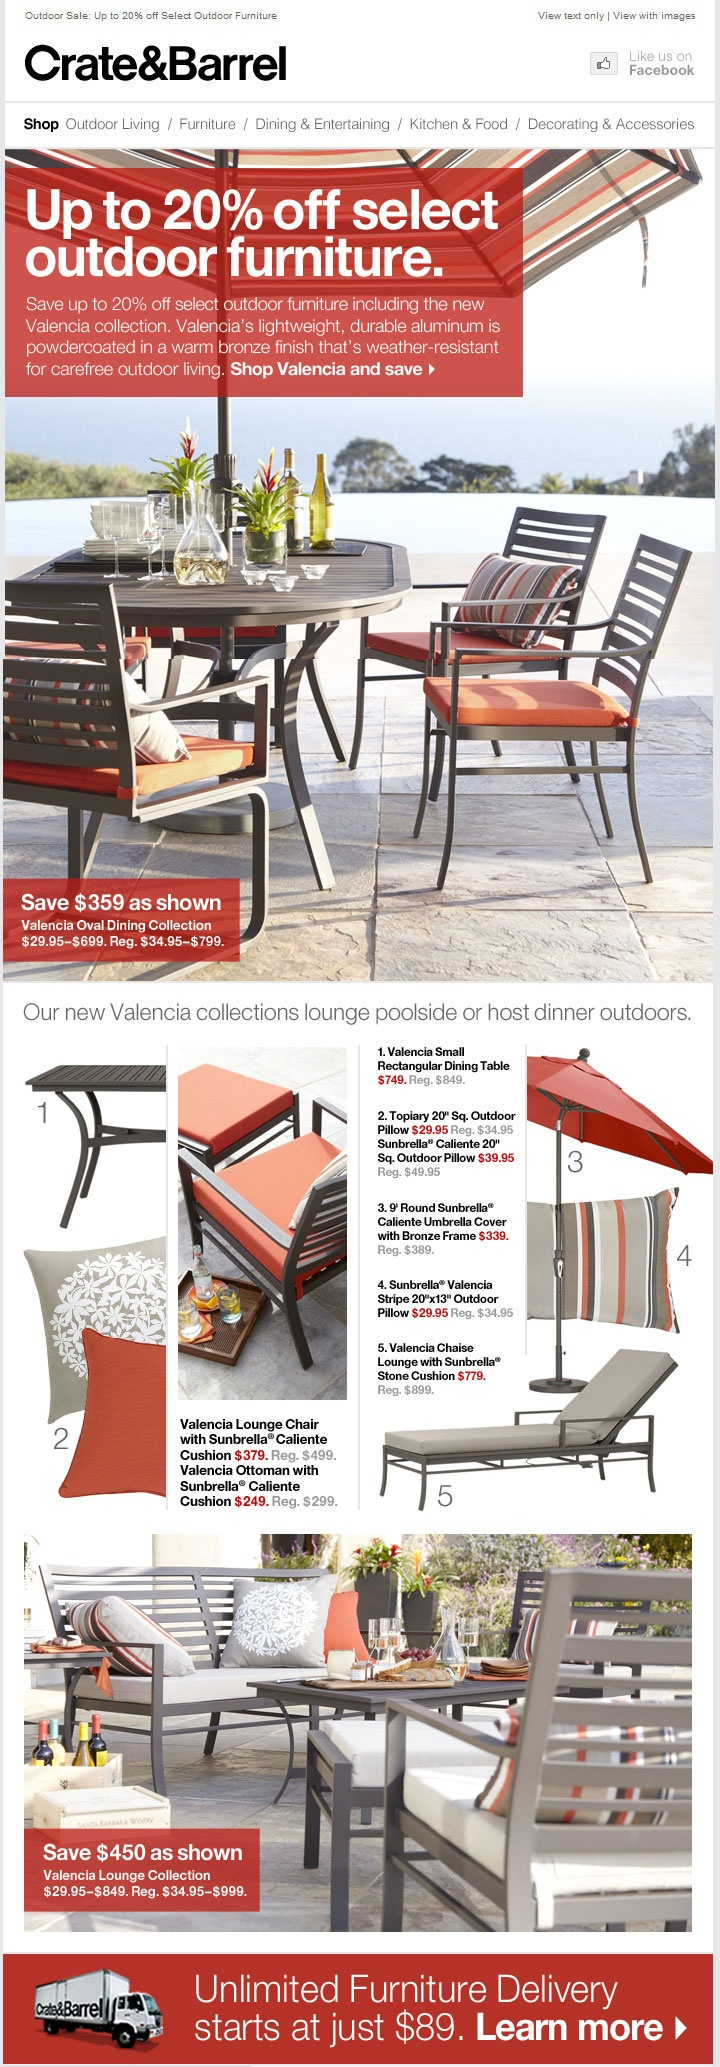 Crate and barrel outdoor furniture sale - Outdoor Sale Up To 20 Off Select Outdoor Furniture